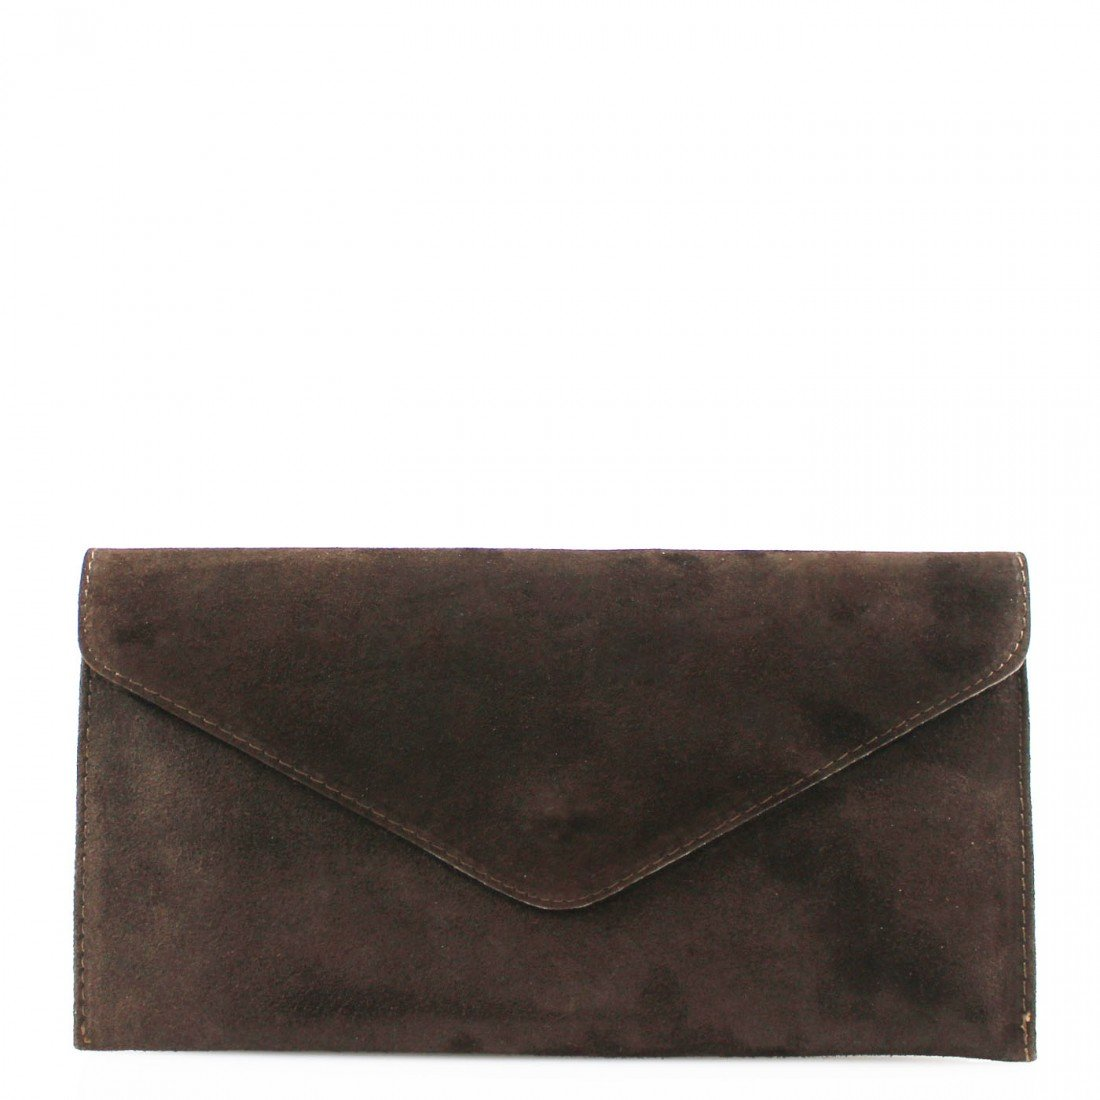 New Womens Genuine Italian Suede Leather Clutch Party Wedding Envelope Bag Olive Green